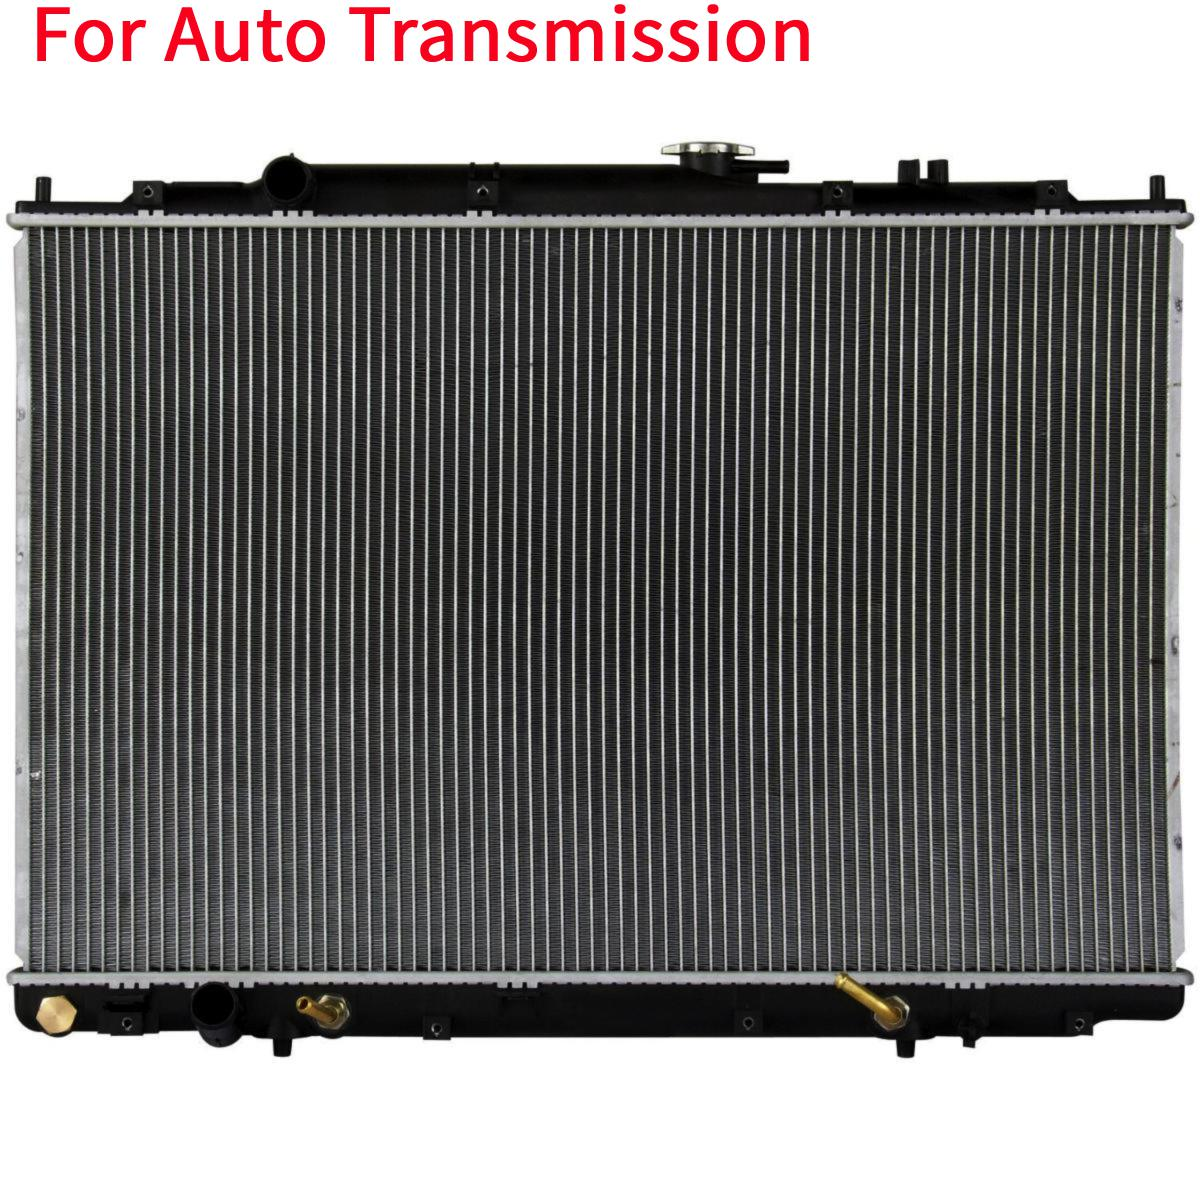 Auto Aluminum Core Radiator For 2003-06 Acura MDX 3.5L